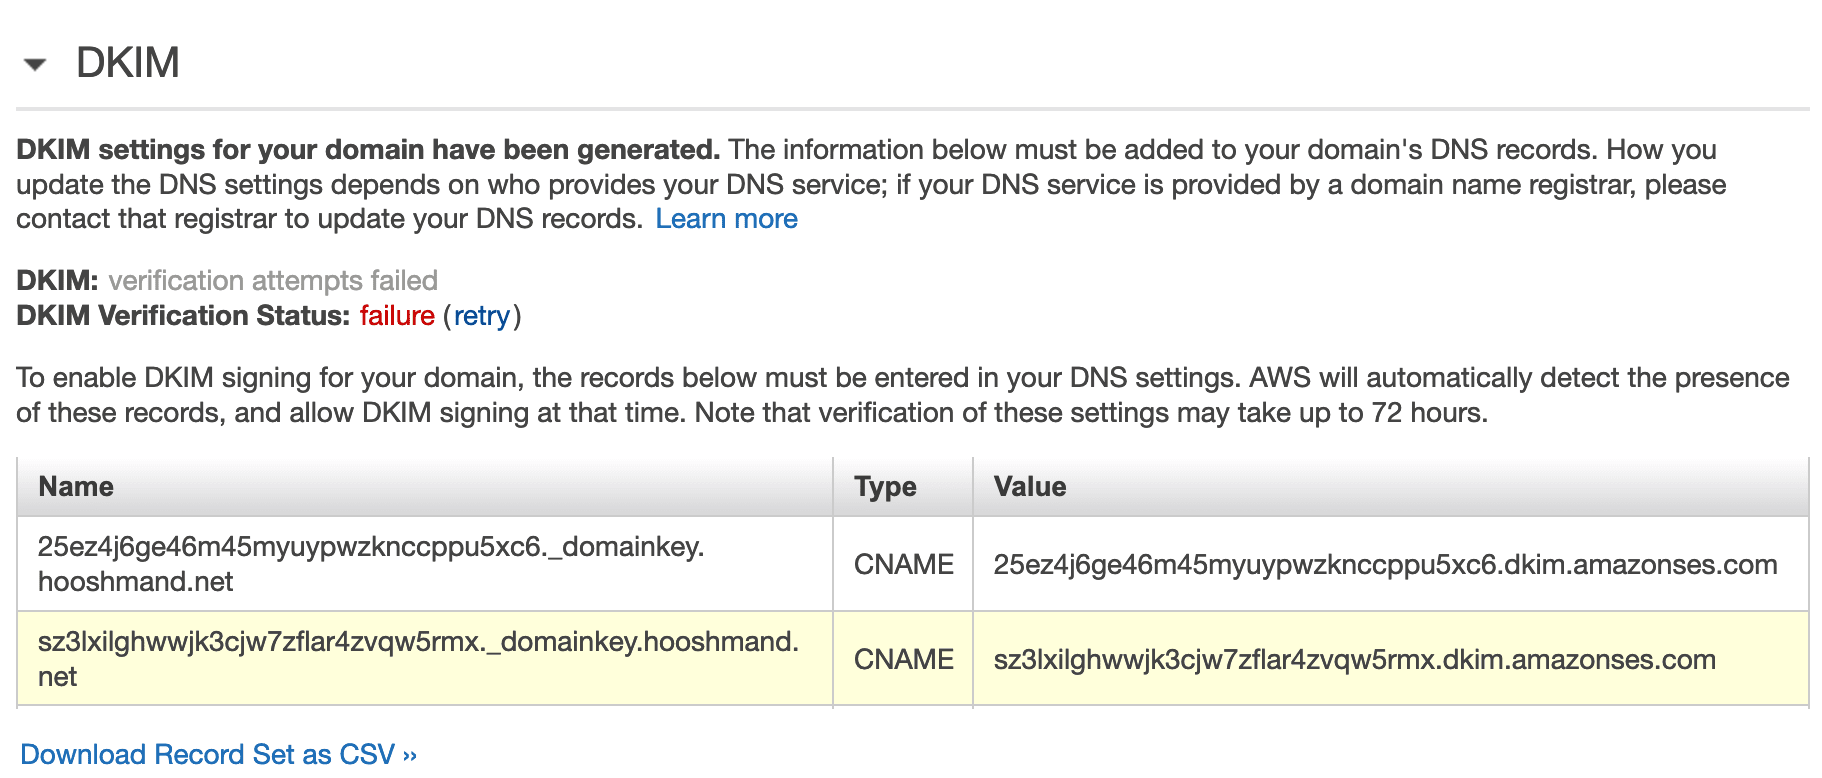 DKIM settings in Amazon SES account